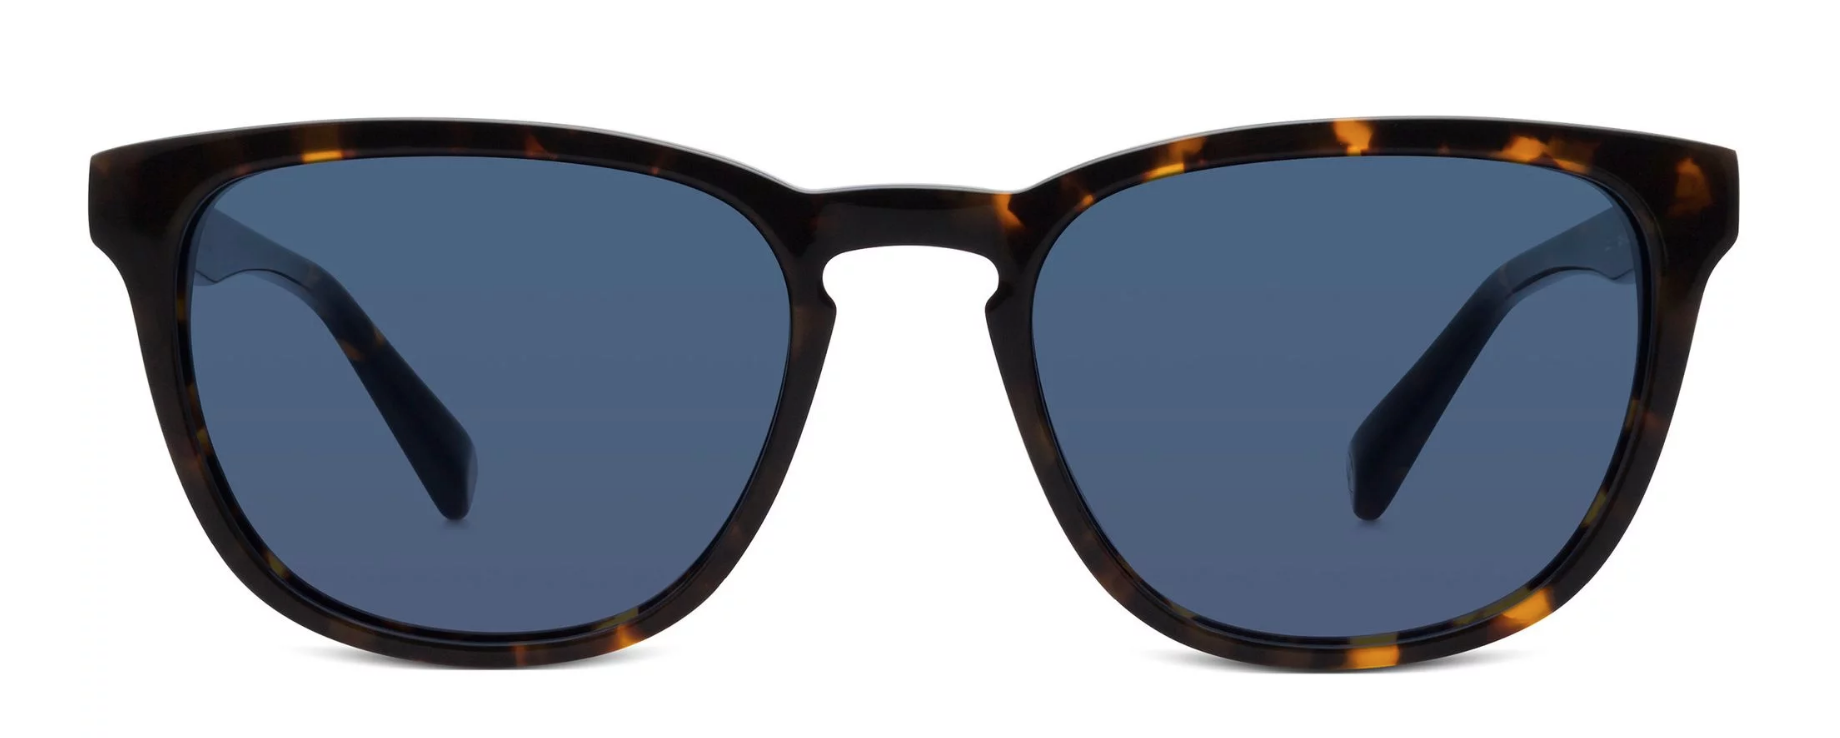 Exact | Warby Parker | $95